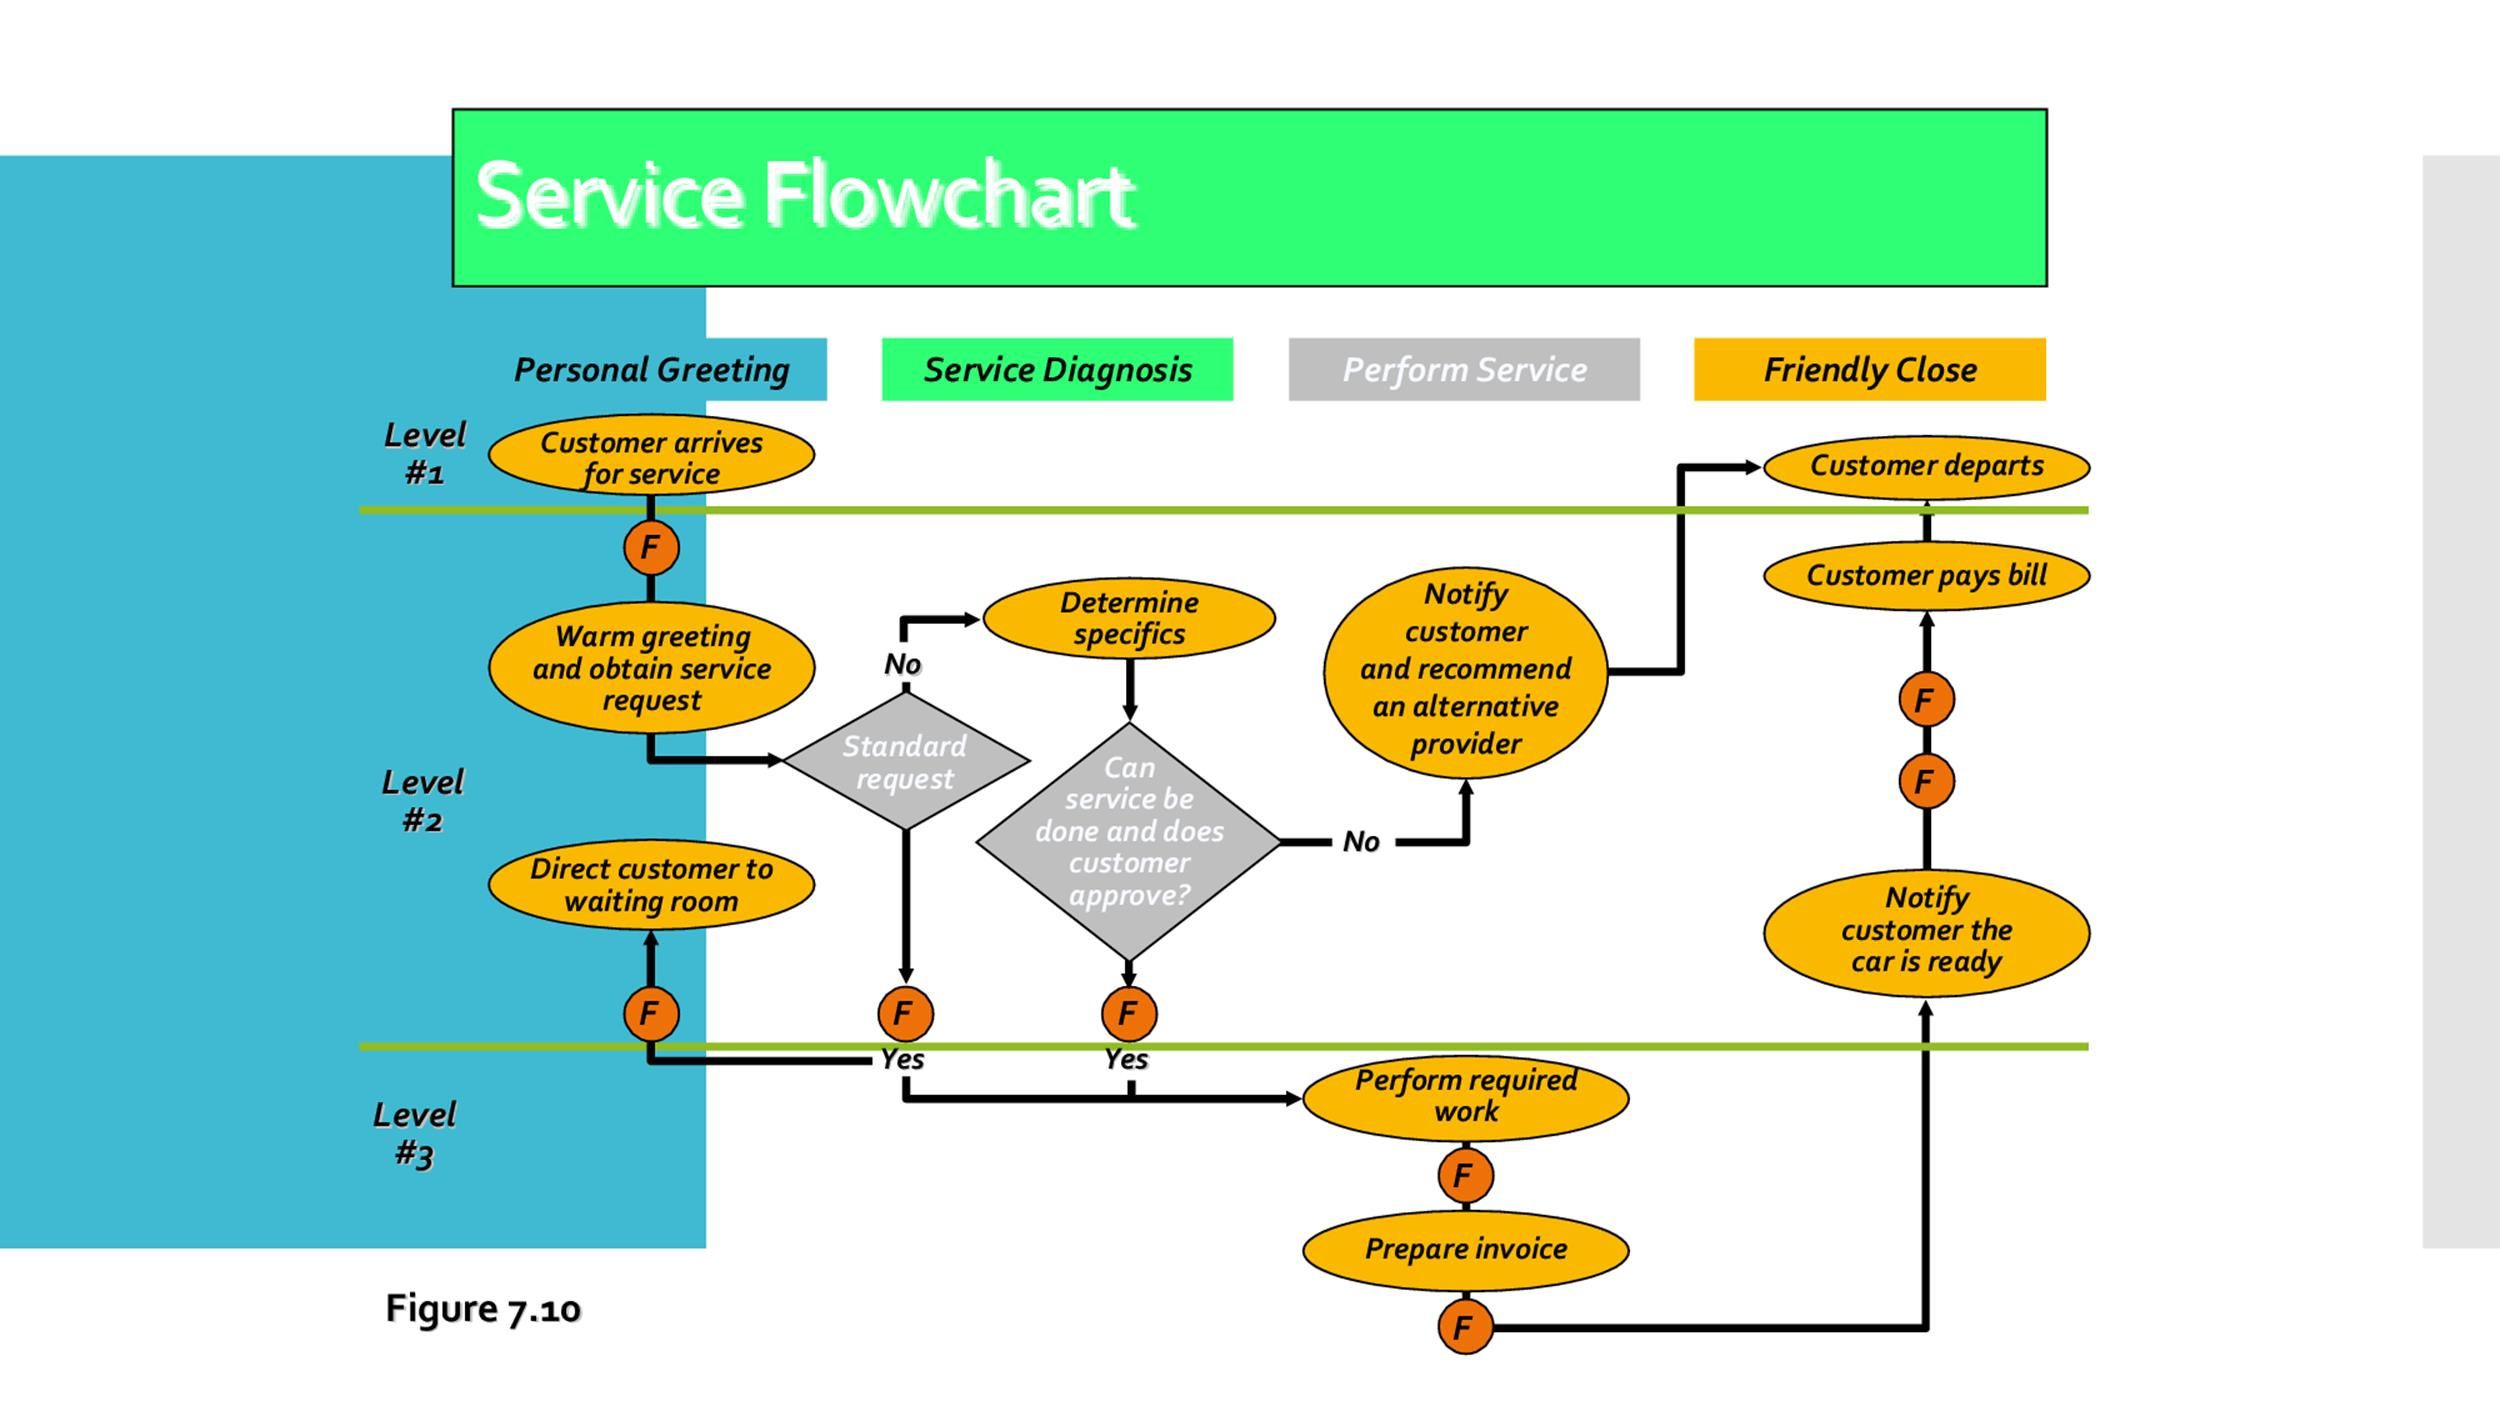 006 Singular Flow Chart Template Excel Free High Resolution  Blank For DownloadFull